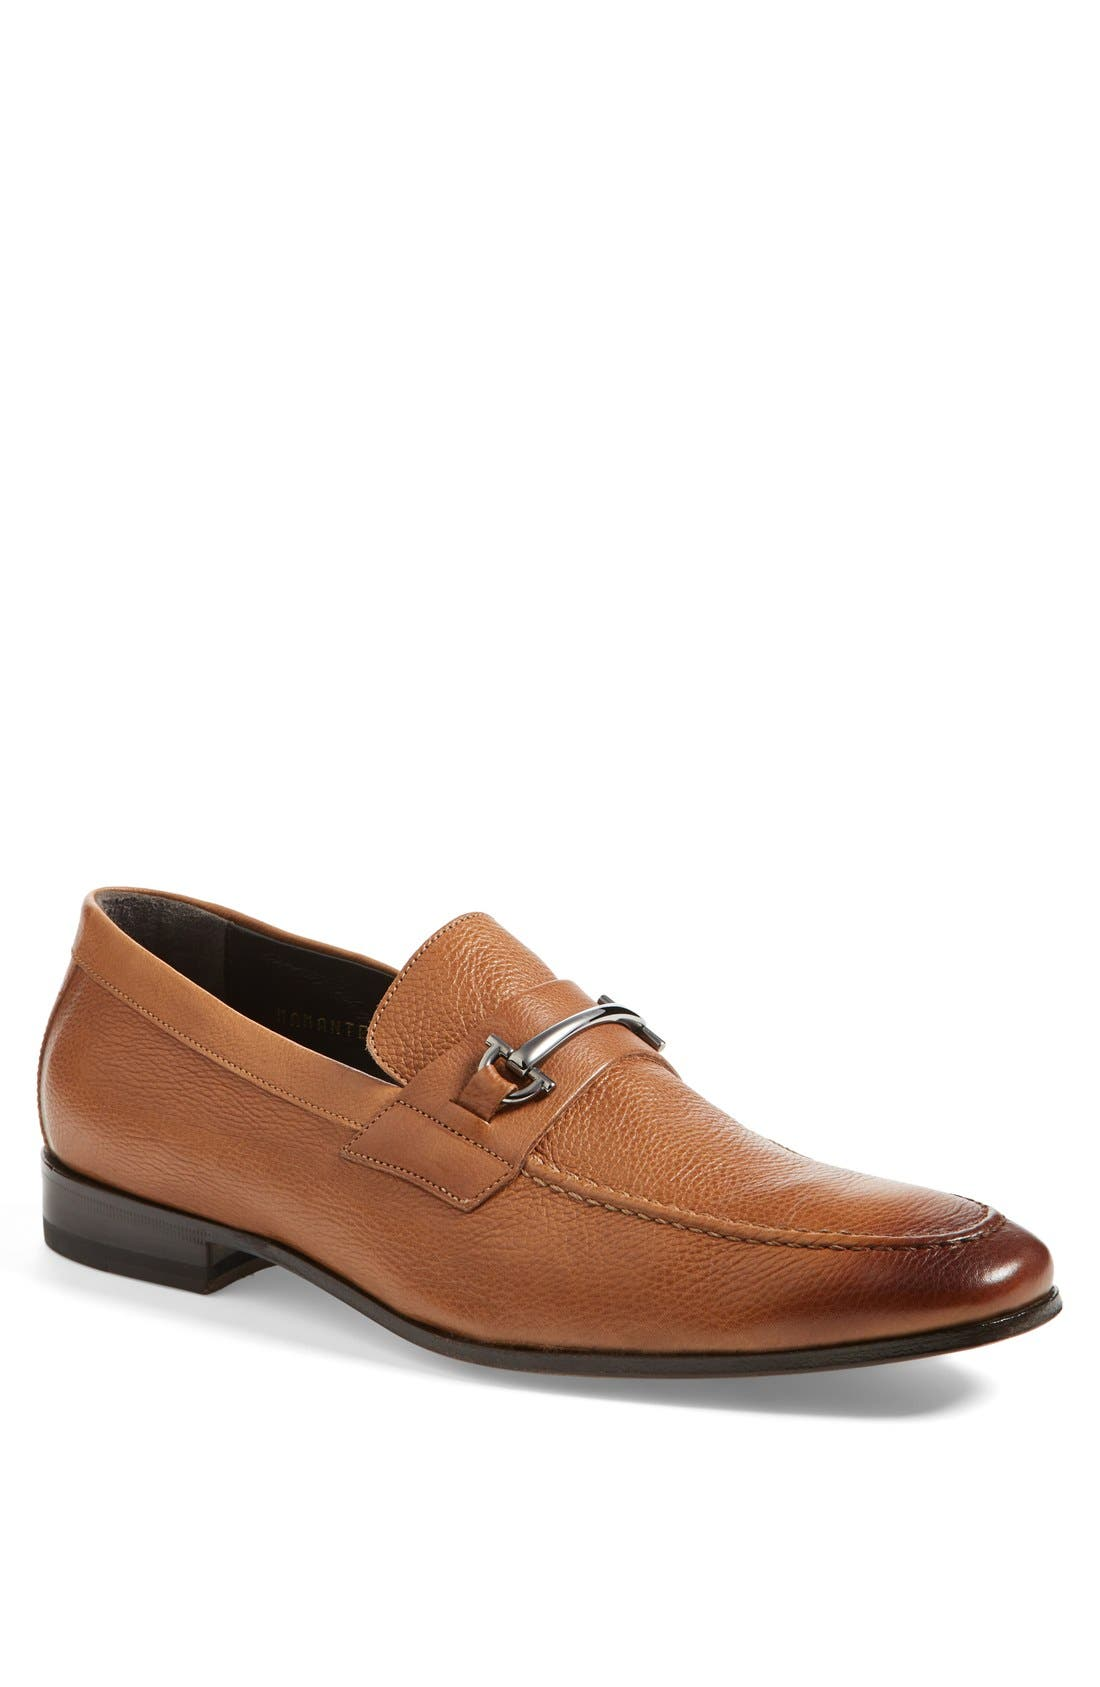 'Mamante II' Pebbled Leather Loafer,                             Main thumbnail 1, color,                             233